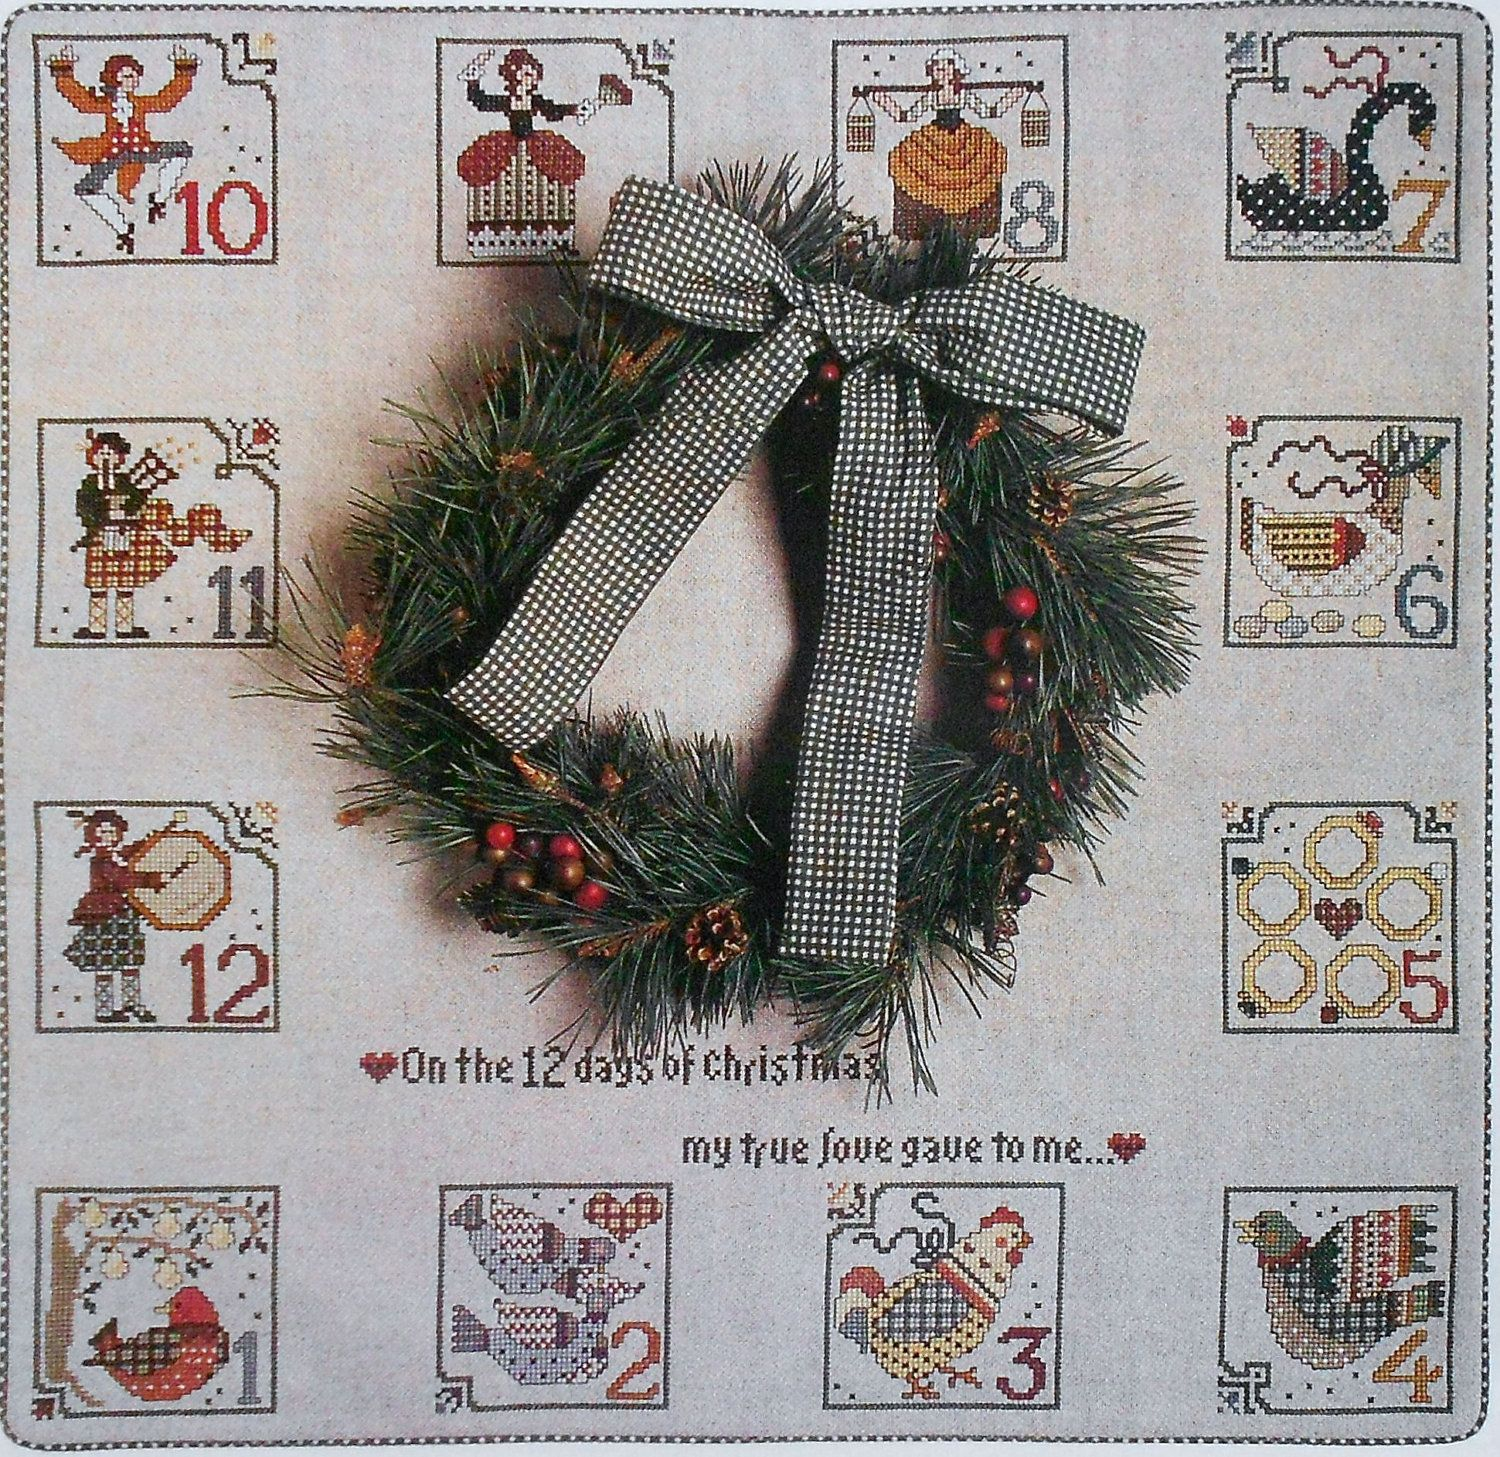 Robin Clark 12 Twelve Days Of Christmas Ornaments Or Wall Hanging Counted Cross Stitch Pattern Chart Fam Christmas Cross Holiday Patterns Christmas Crafts